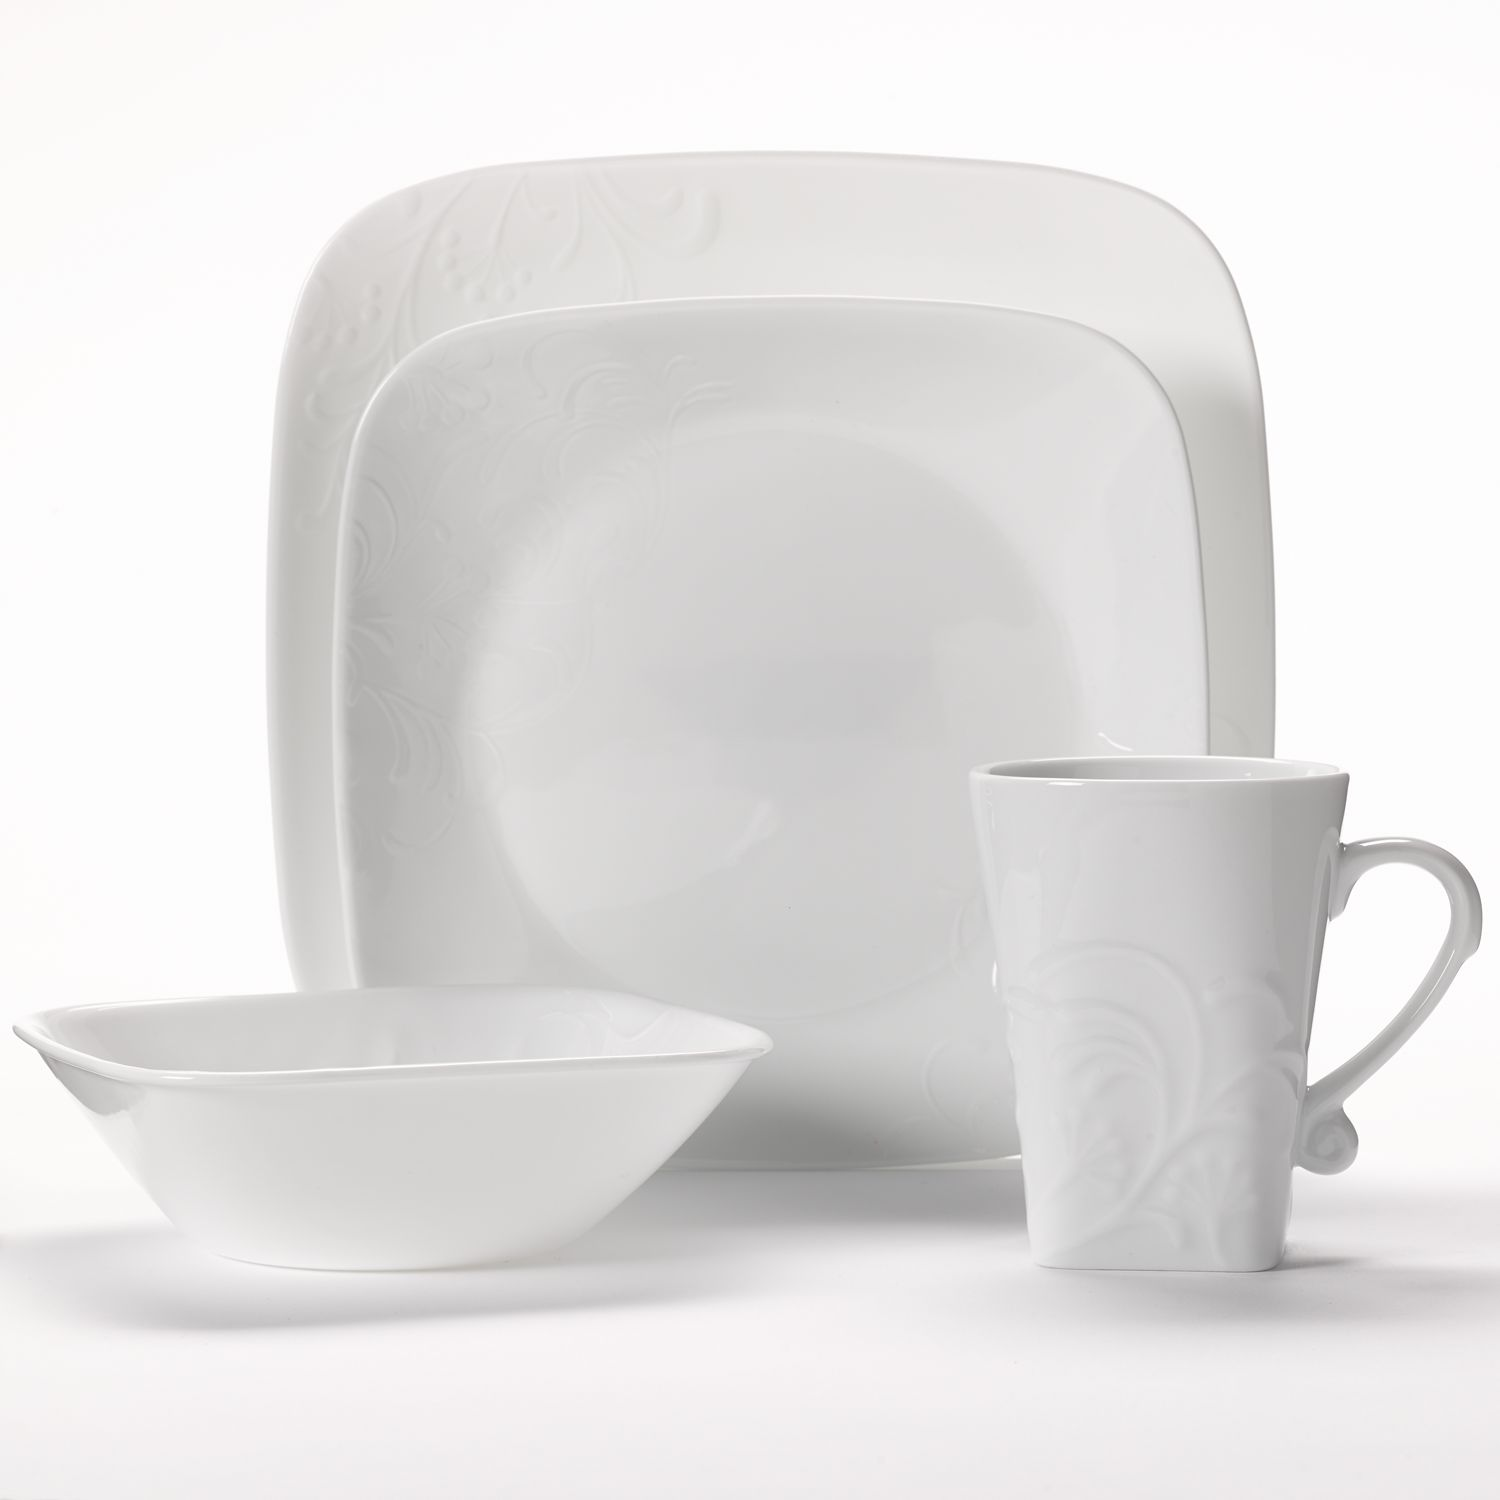 Corelle Cherish 16-pc. Dinnerware Set  sc 1 st  Kohl\u0027s & Cherish 16-pc. Dinnerware Set